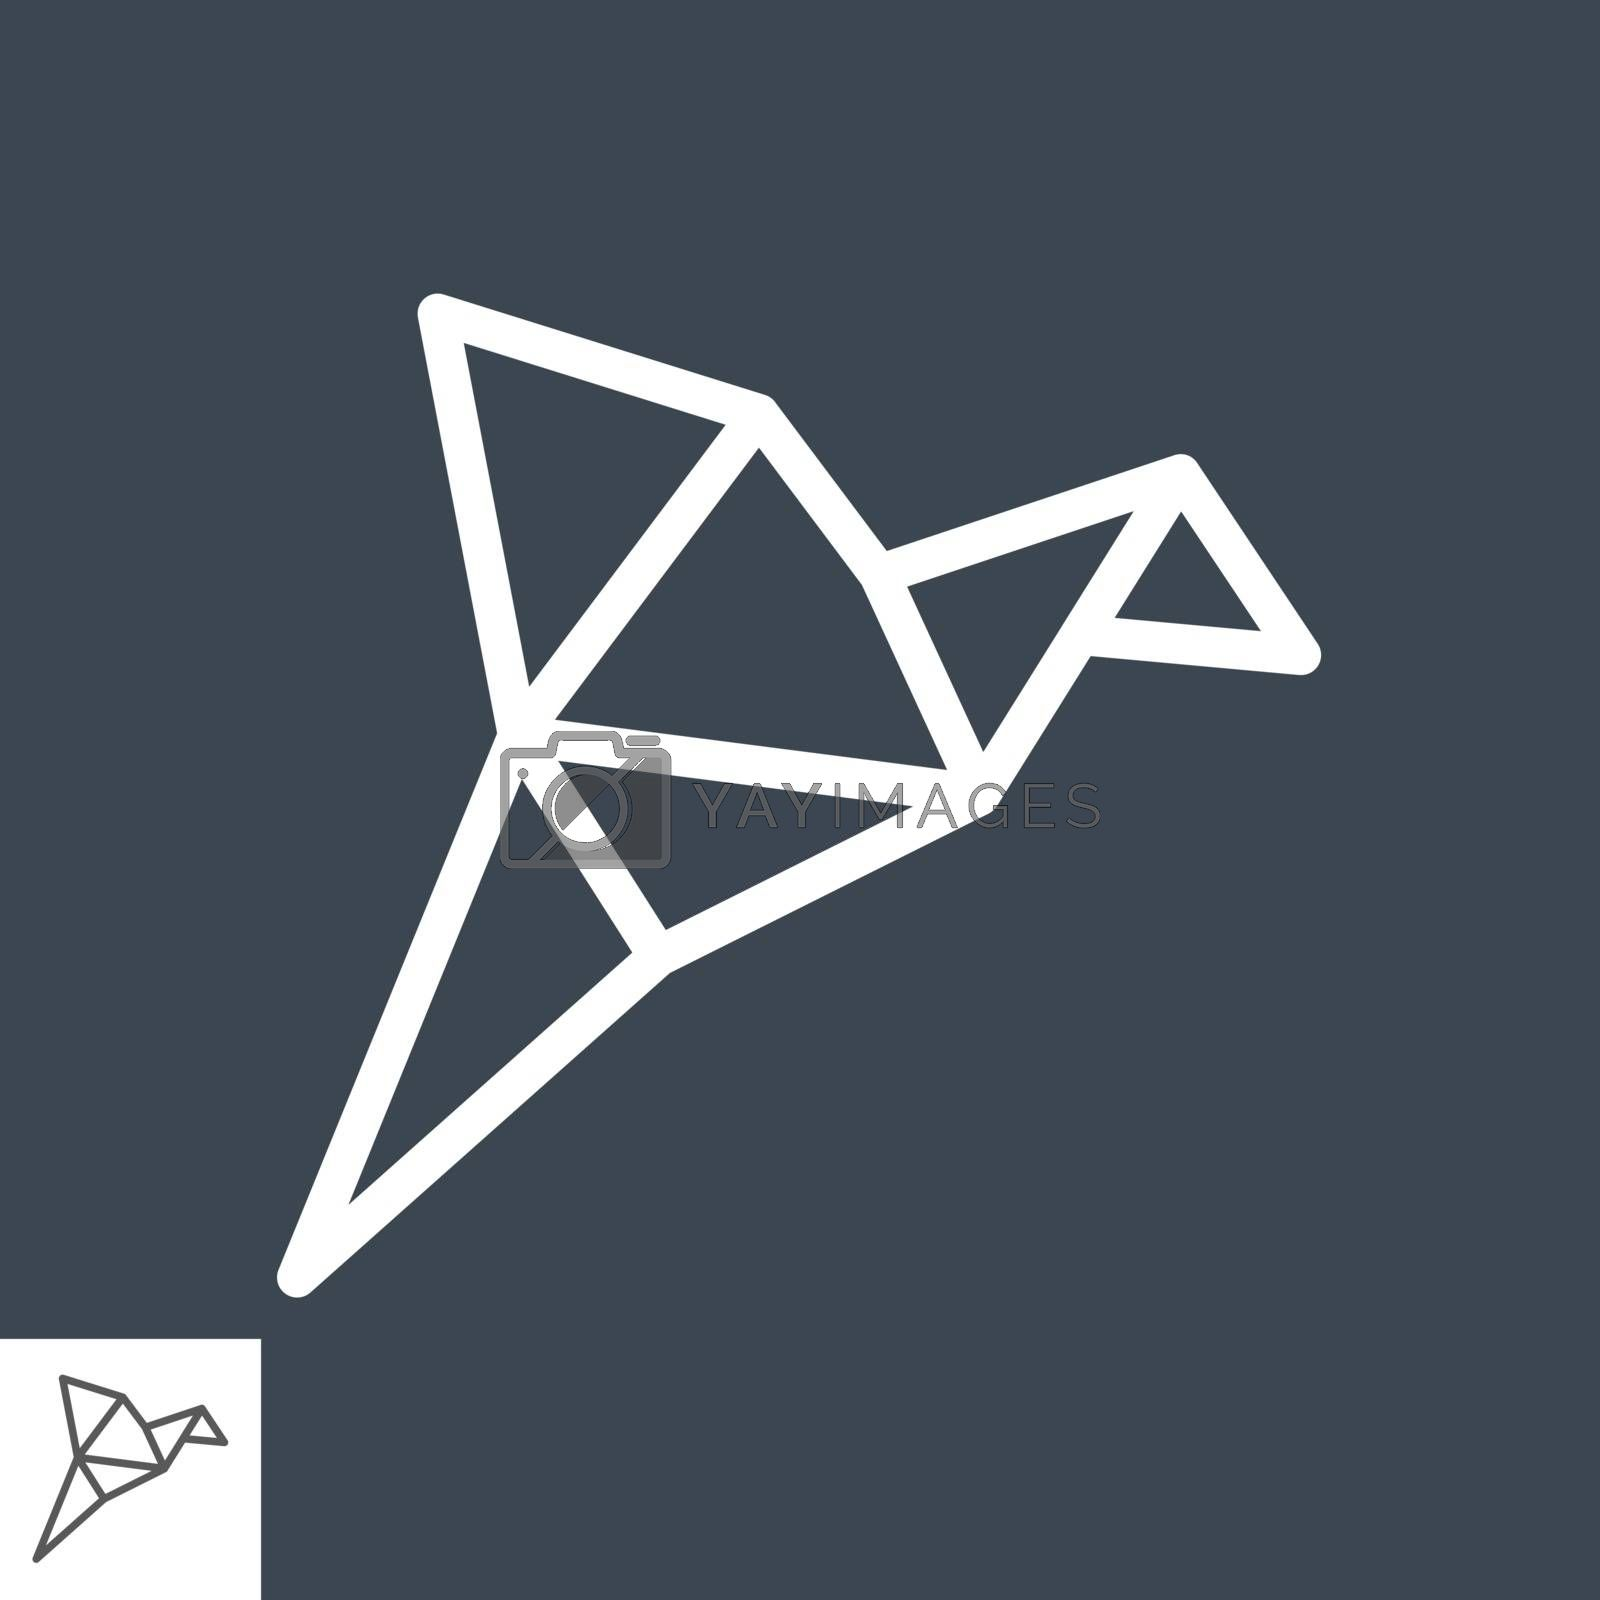 Origami Bird Thin Line Vector Icon. Flat icon isolated on the black background. Editable EPS file. Vector illustration.